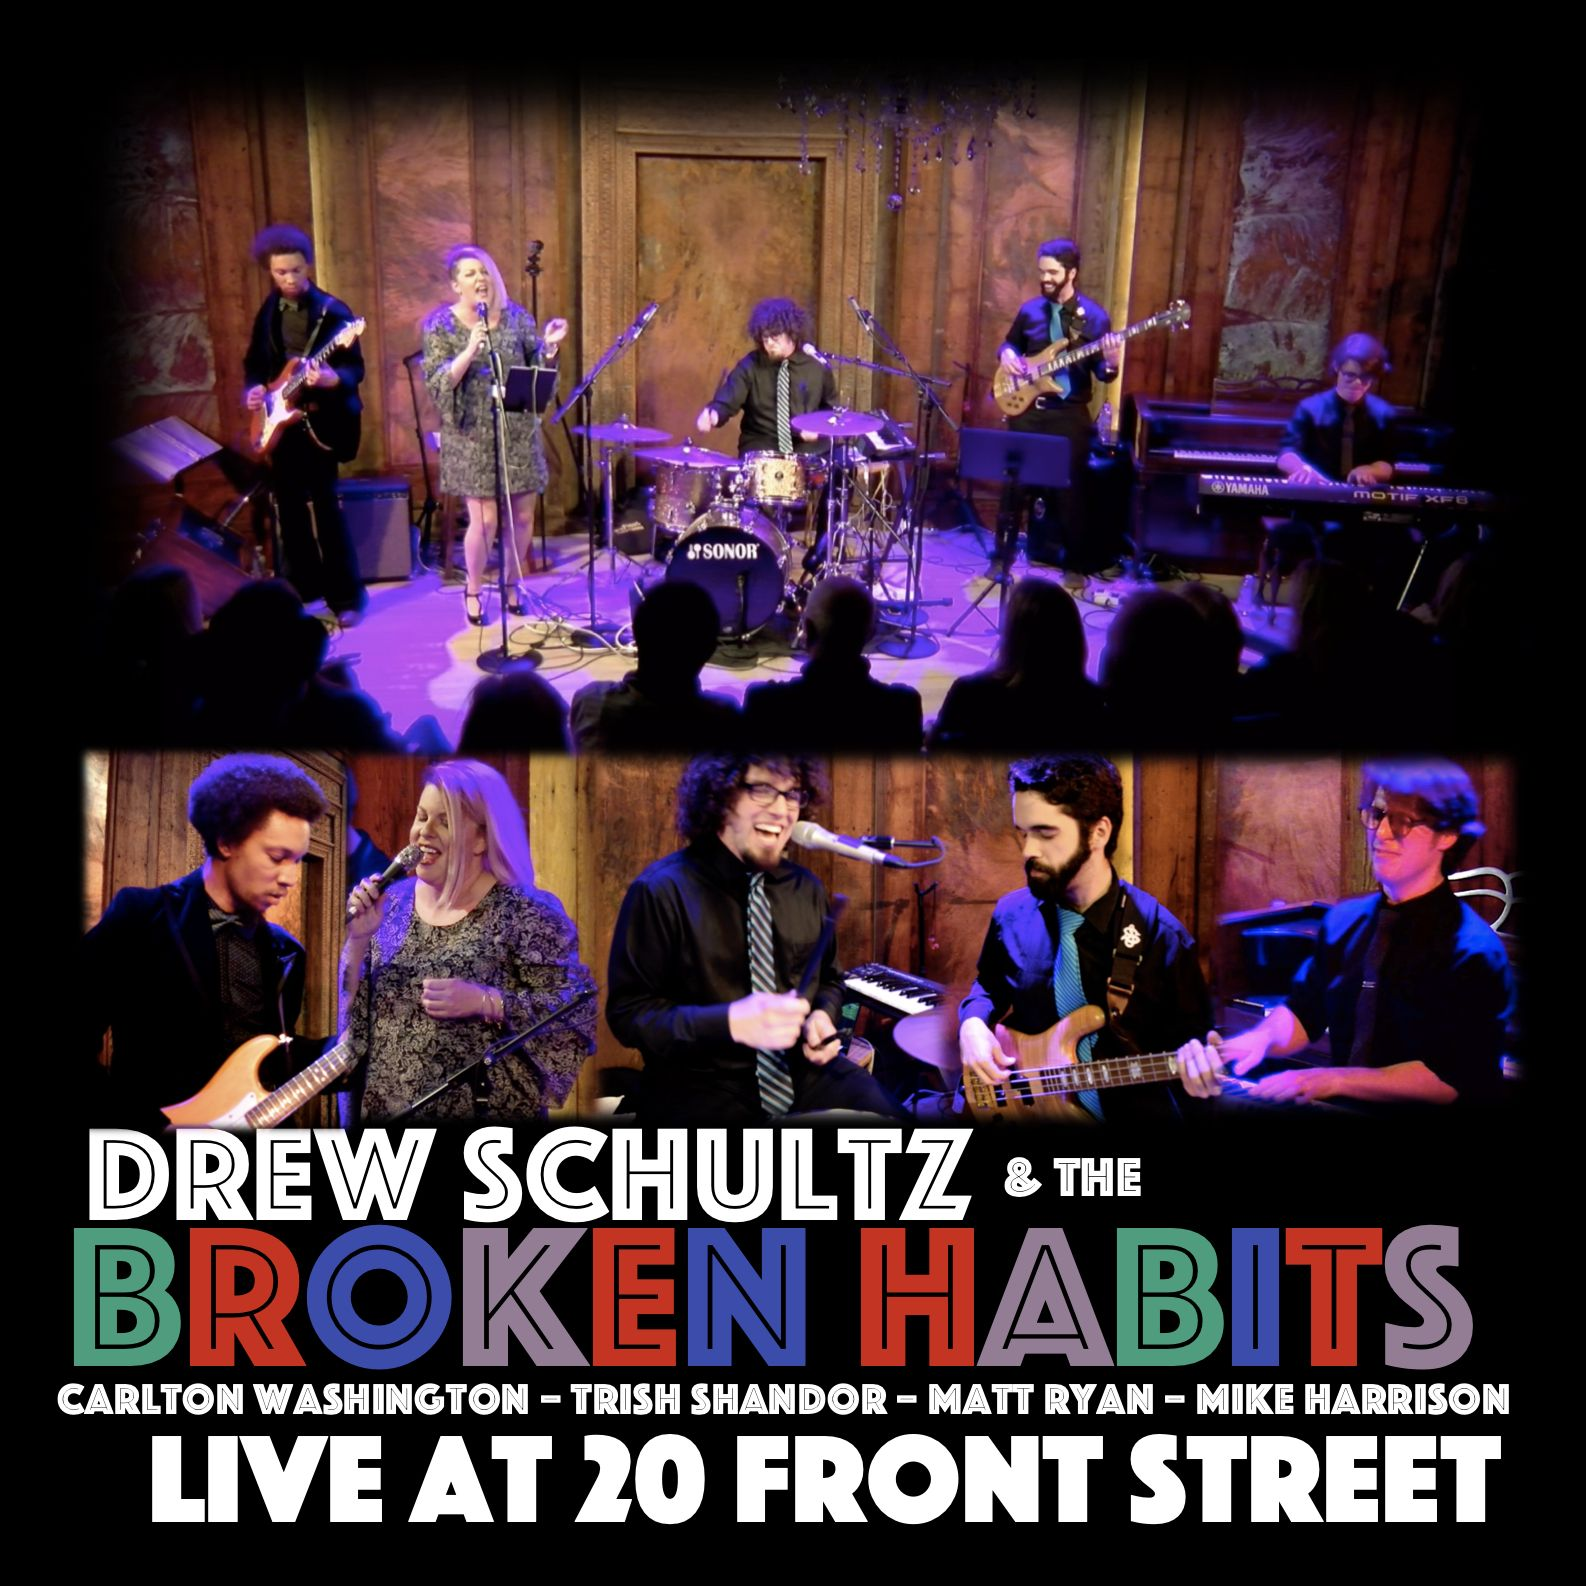 Drew Schultz Broken Habits - Live at 20 Front St